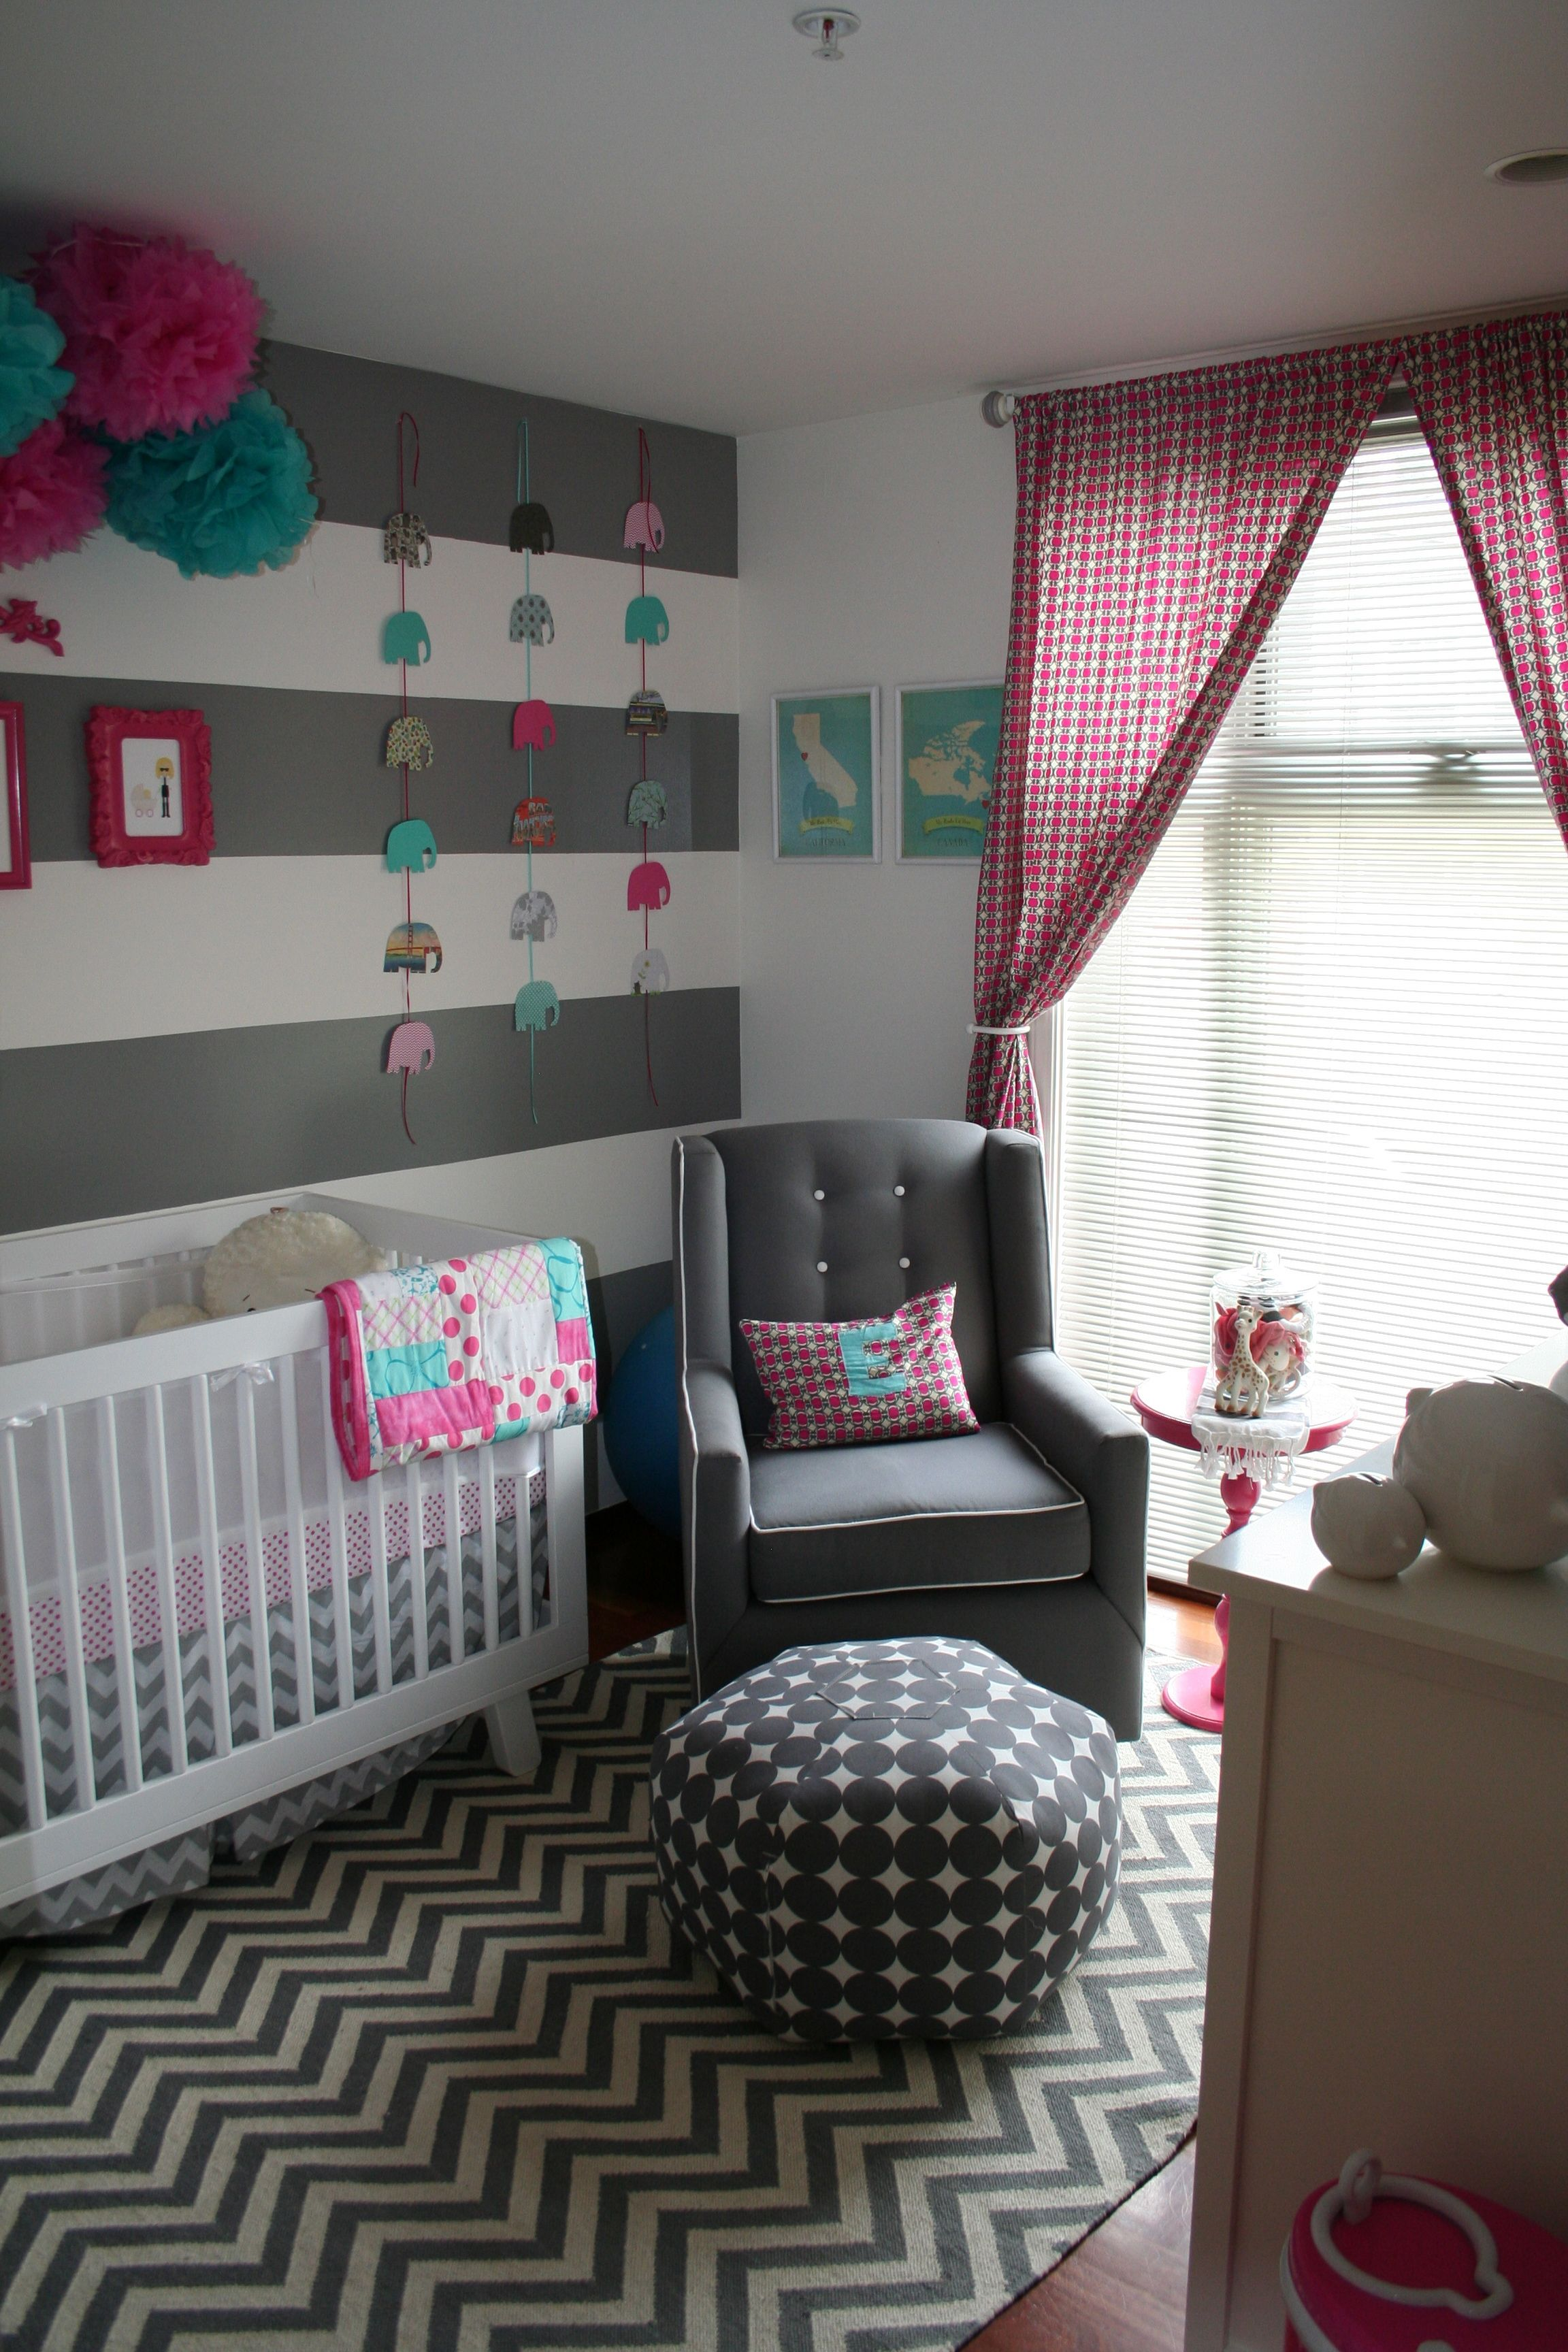 Best Hot Pink And Turquoise Nursery For Emma Gwendolyn 640 x 480